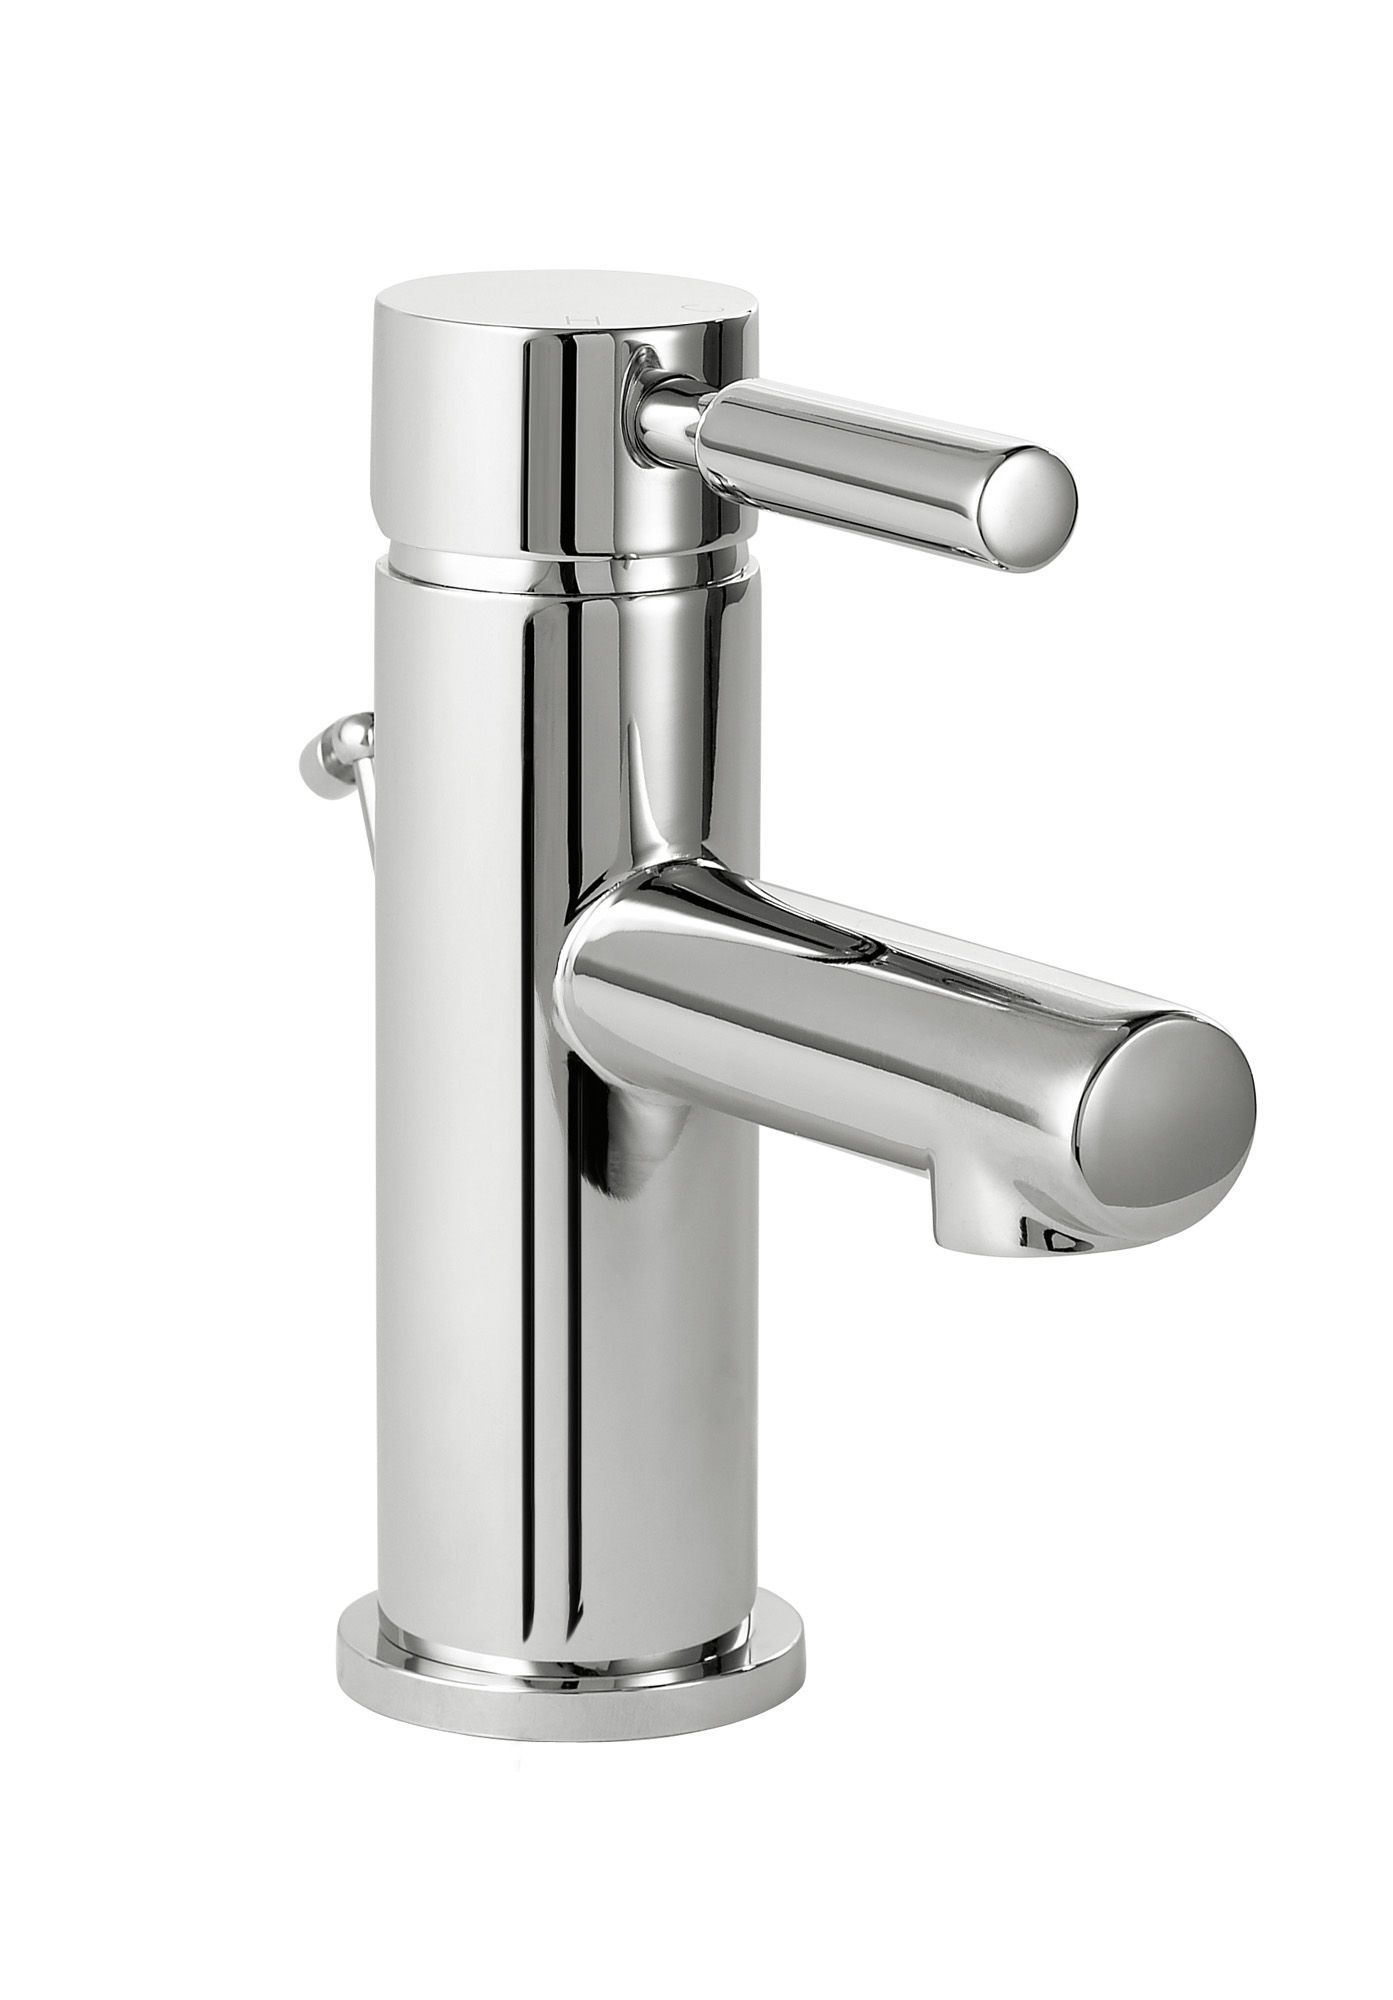 Cooke & Lewis Cirque 1 Lever Basin Mixer Tap | Departments ...